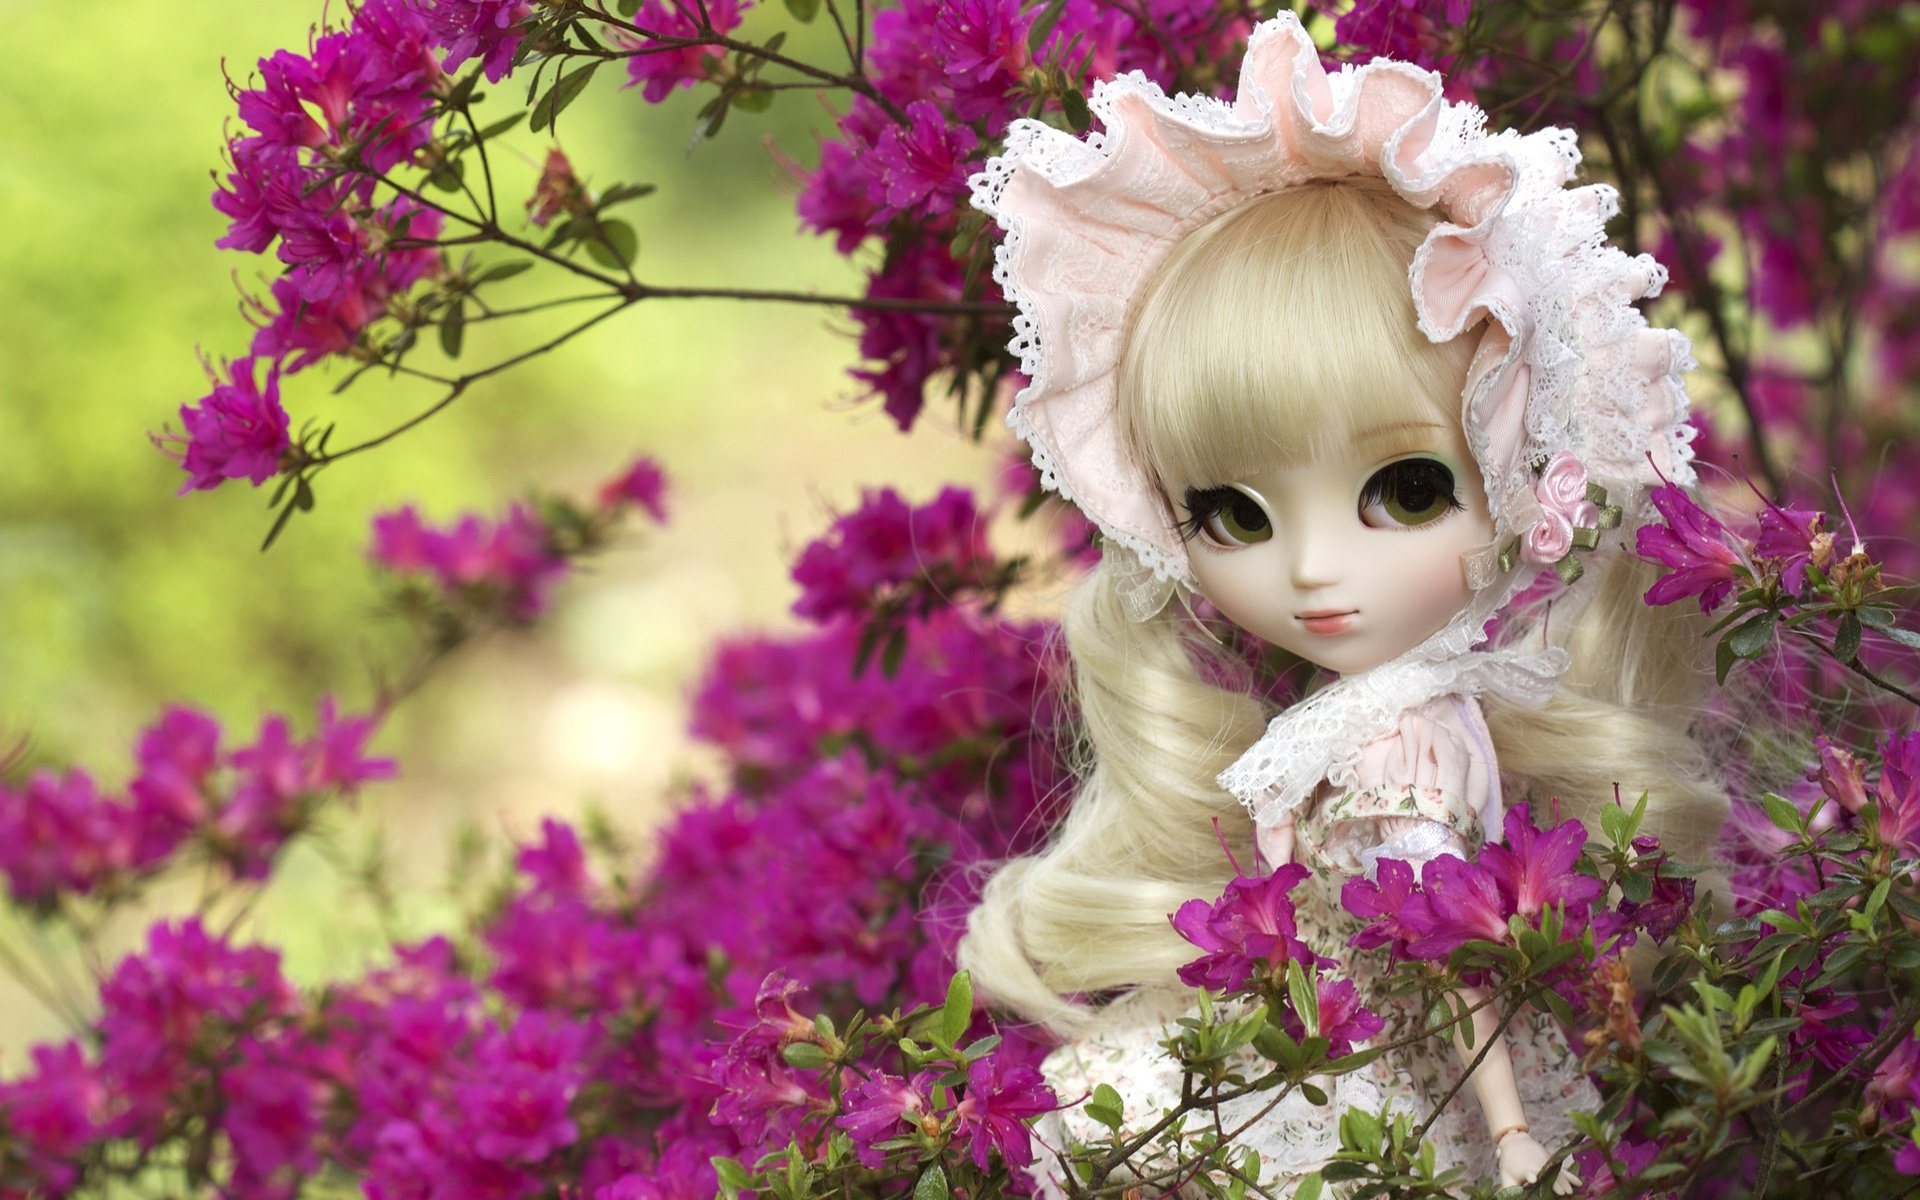 49 ] Cute Doll Wallpapers On WallpaperSafari